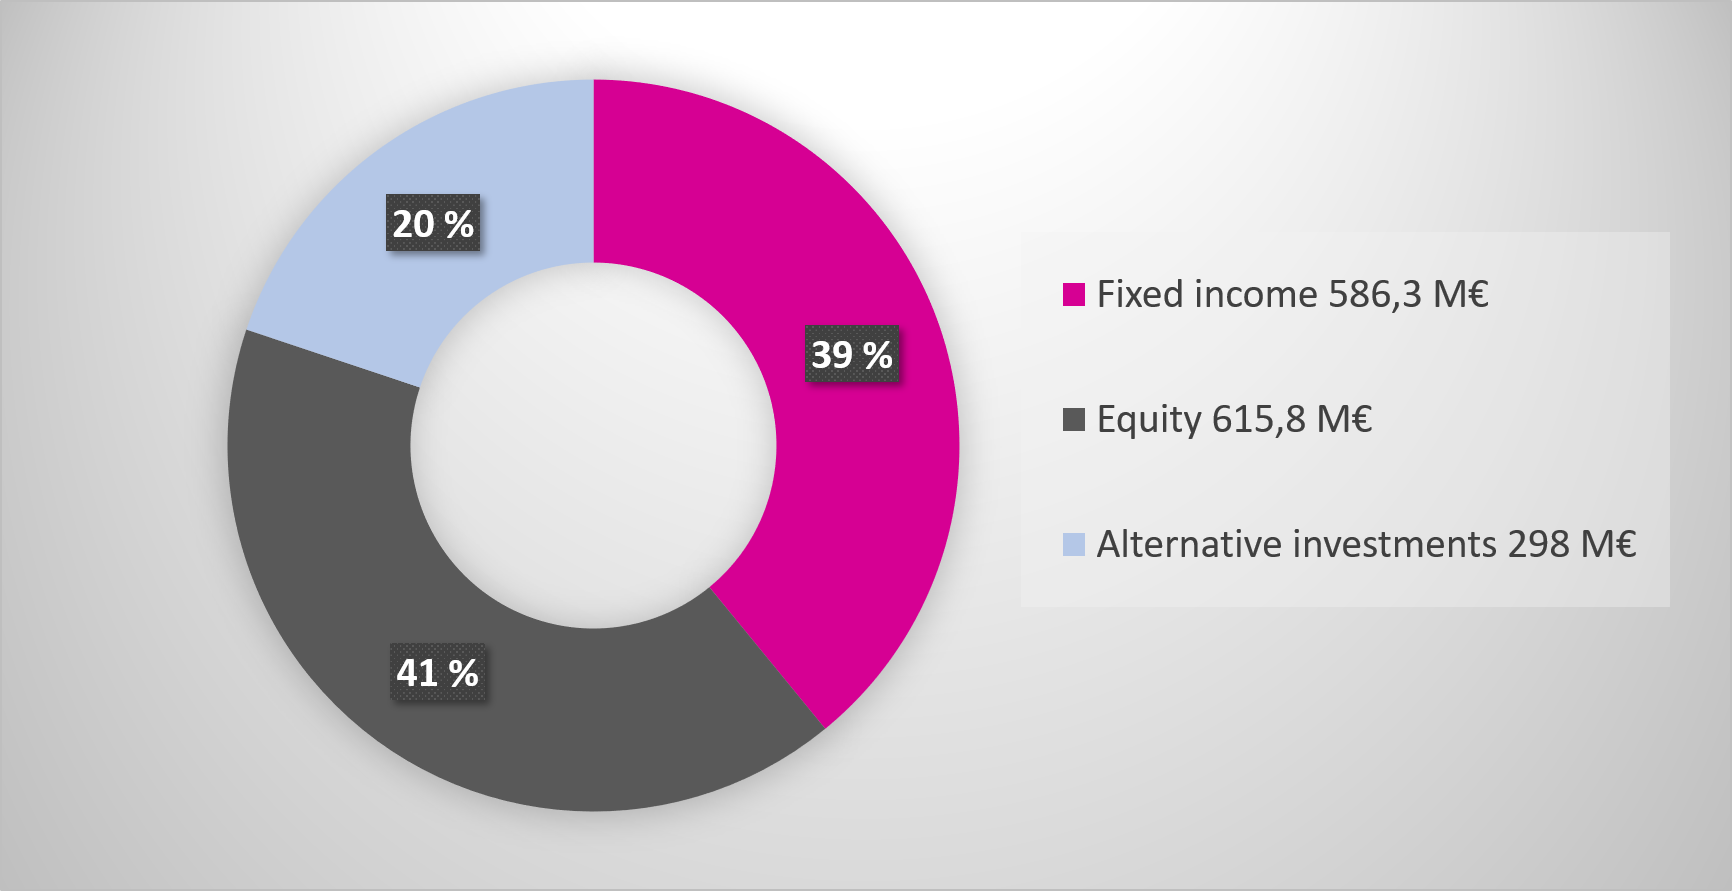 Fixed income 586,3 million euros (39%), Equity 615,8 million euros (41%), Alternative investments 298 million euros (20%)